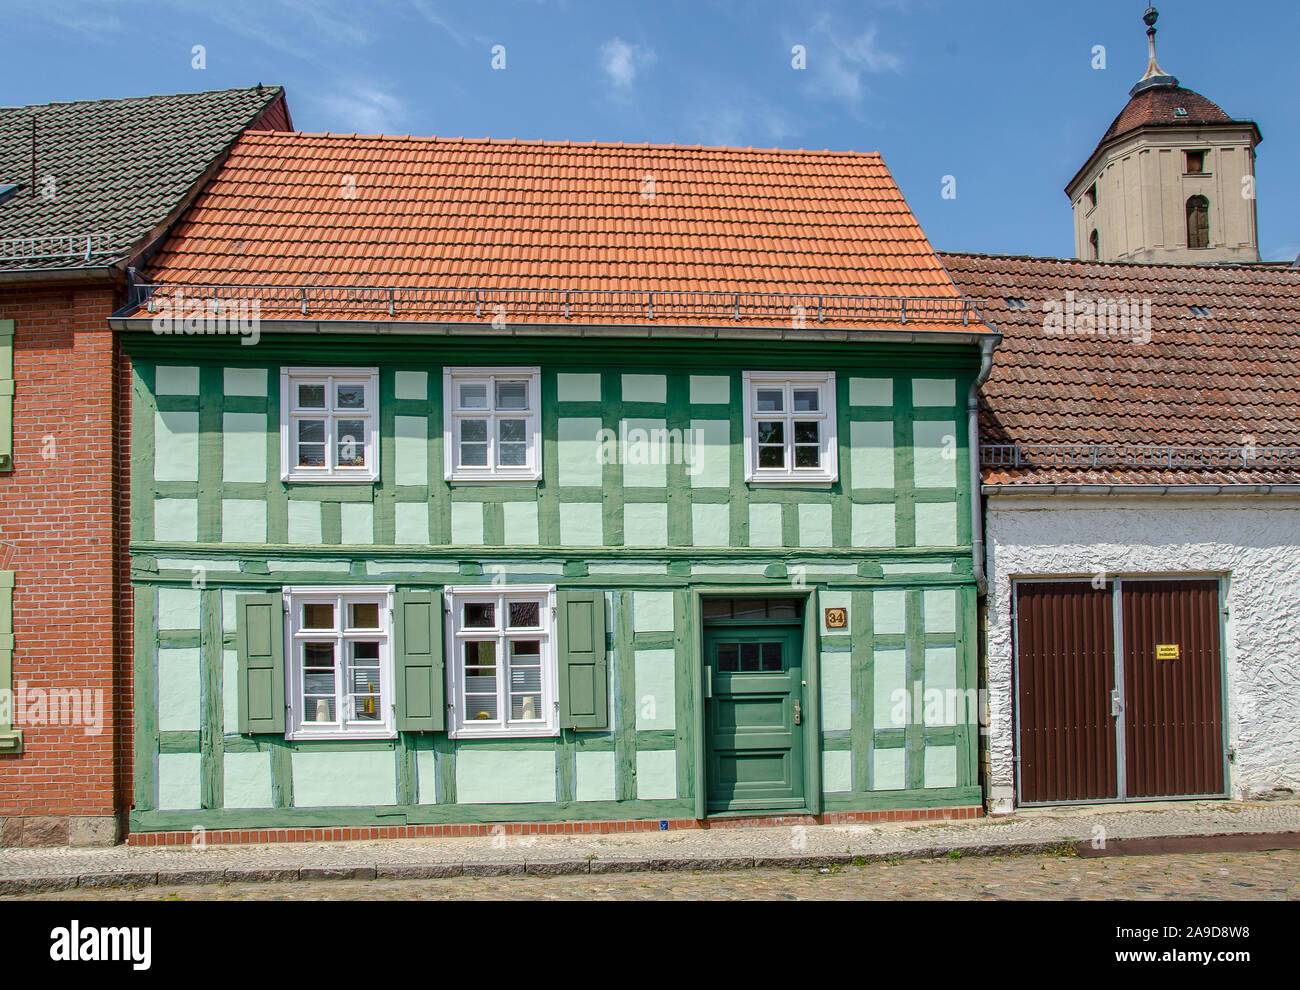 """The idyllic town of Treuenbrietzen, with its medieval town Centre, is situated in the northern edge of the glacial land ridge called """"Niederer Fläming Stock Photo"""